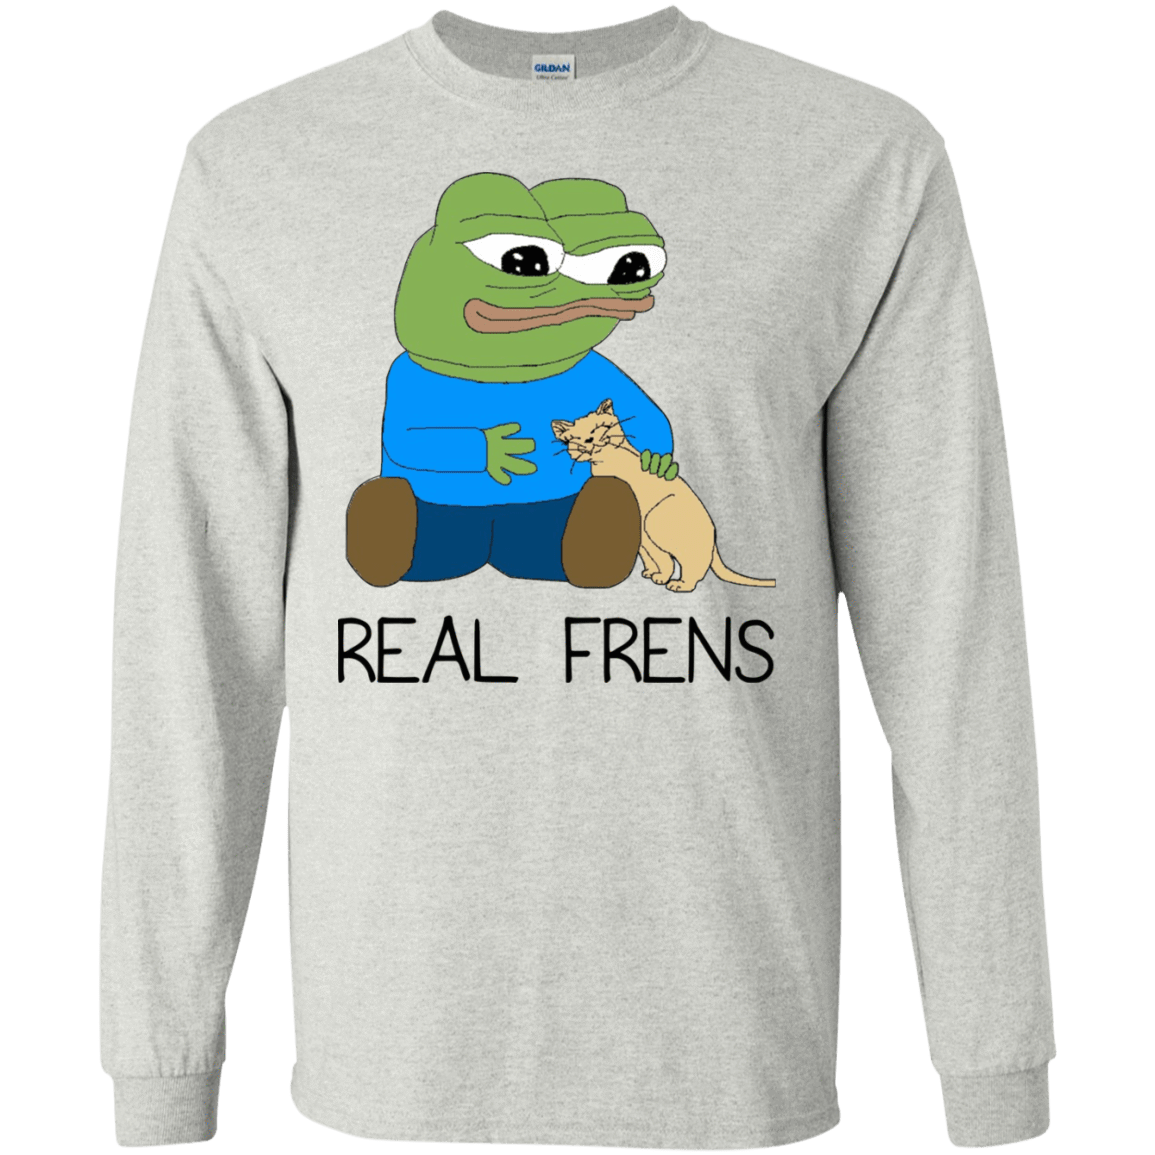 Real Frens 30-2112-73889415-10754 - Tee Ript